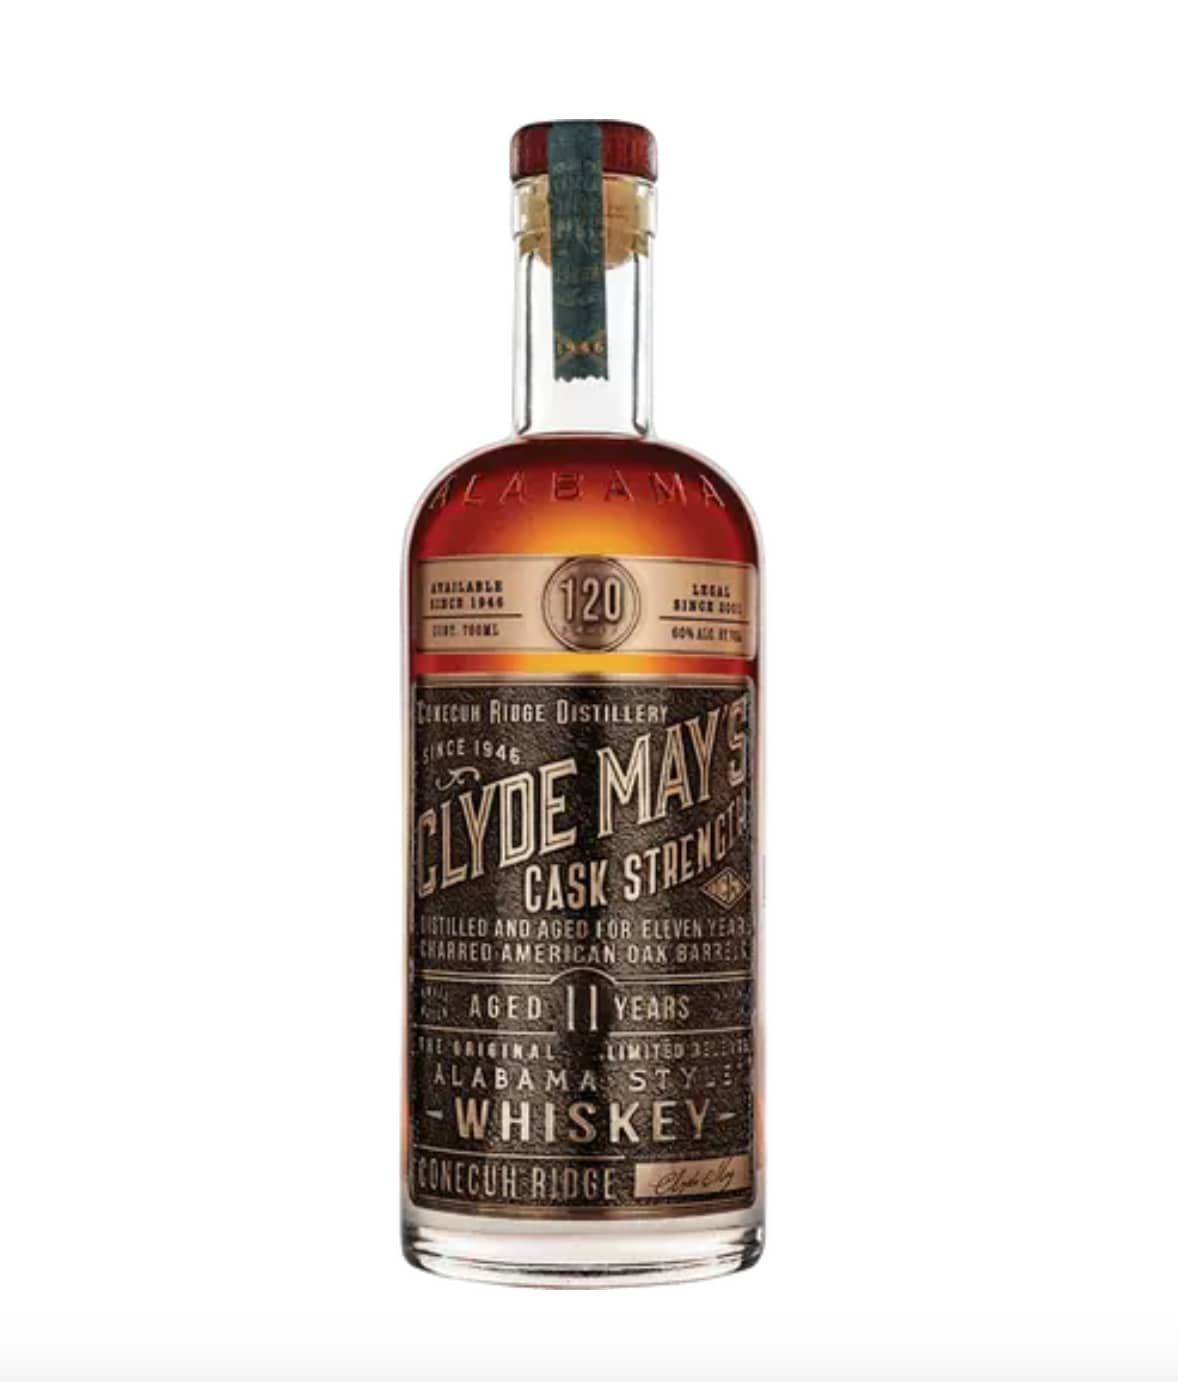 clyde-mays-cask-strength-whiskey